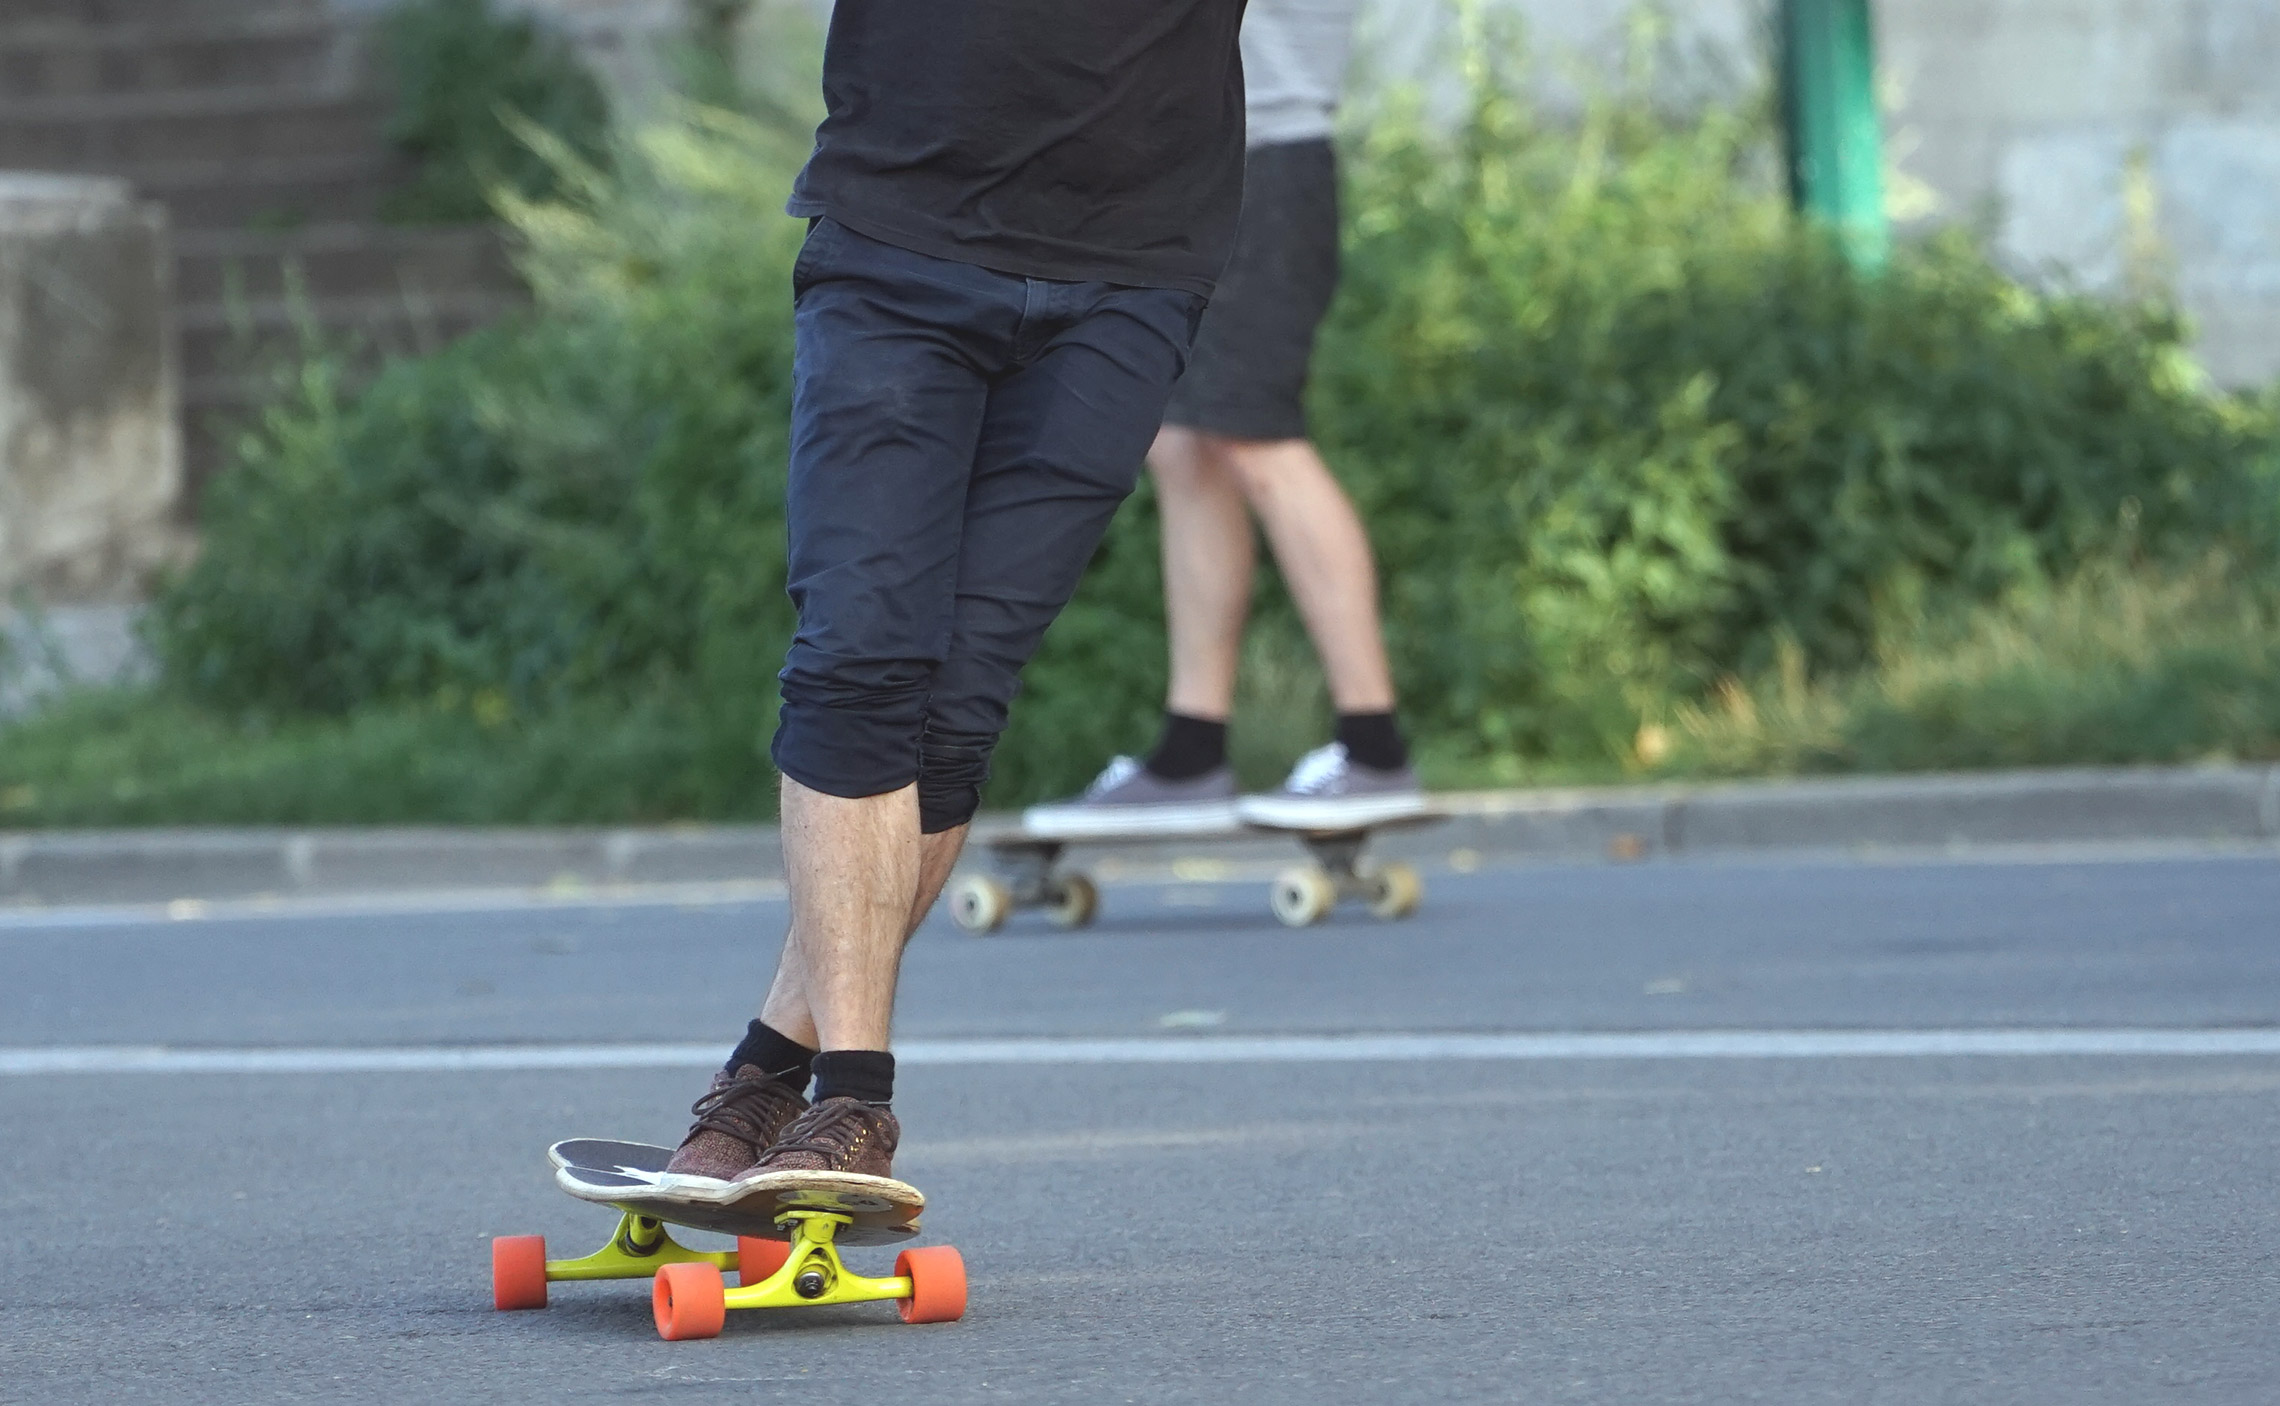 ... skateboard or longboard with an axle 2a9a6ceaecc